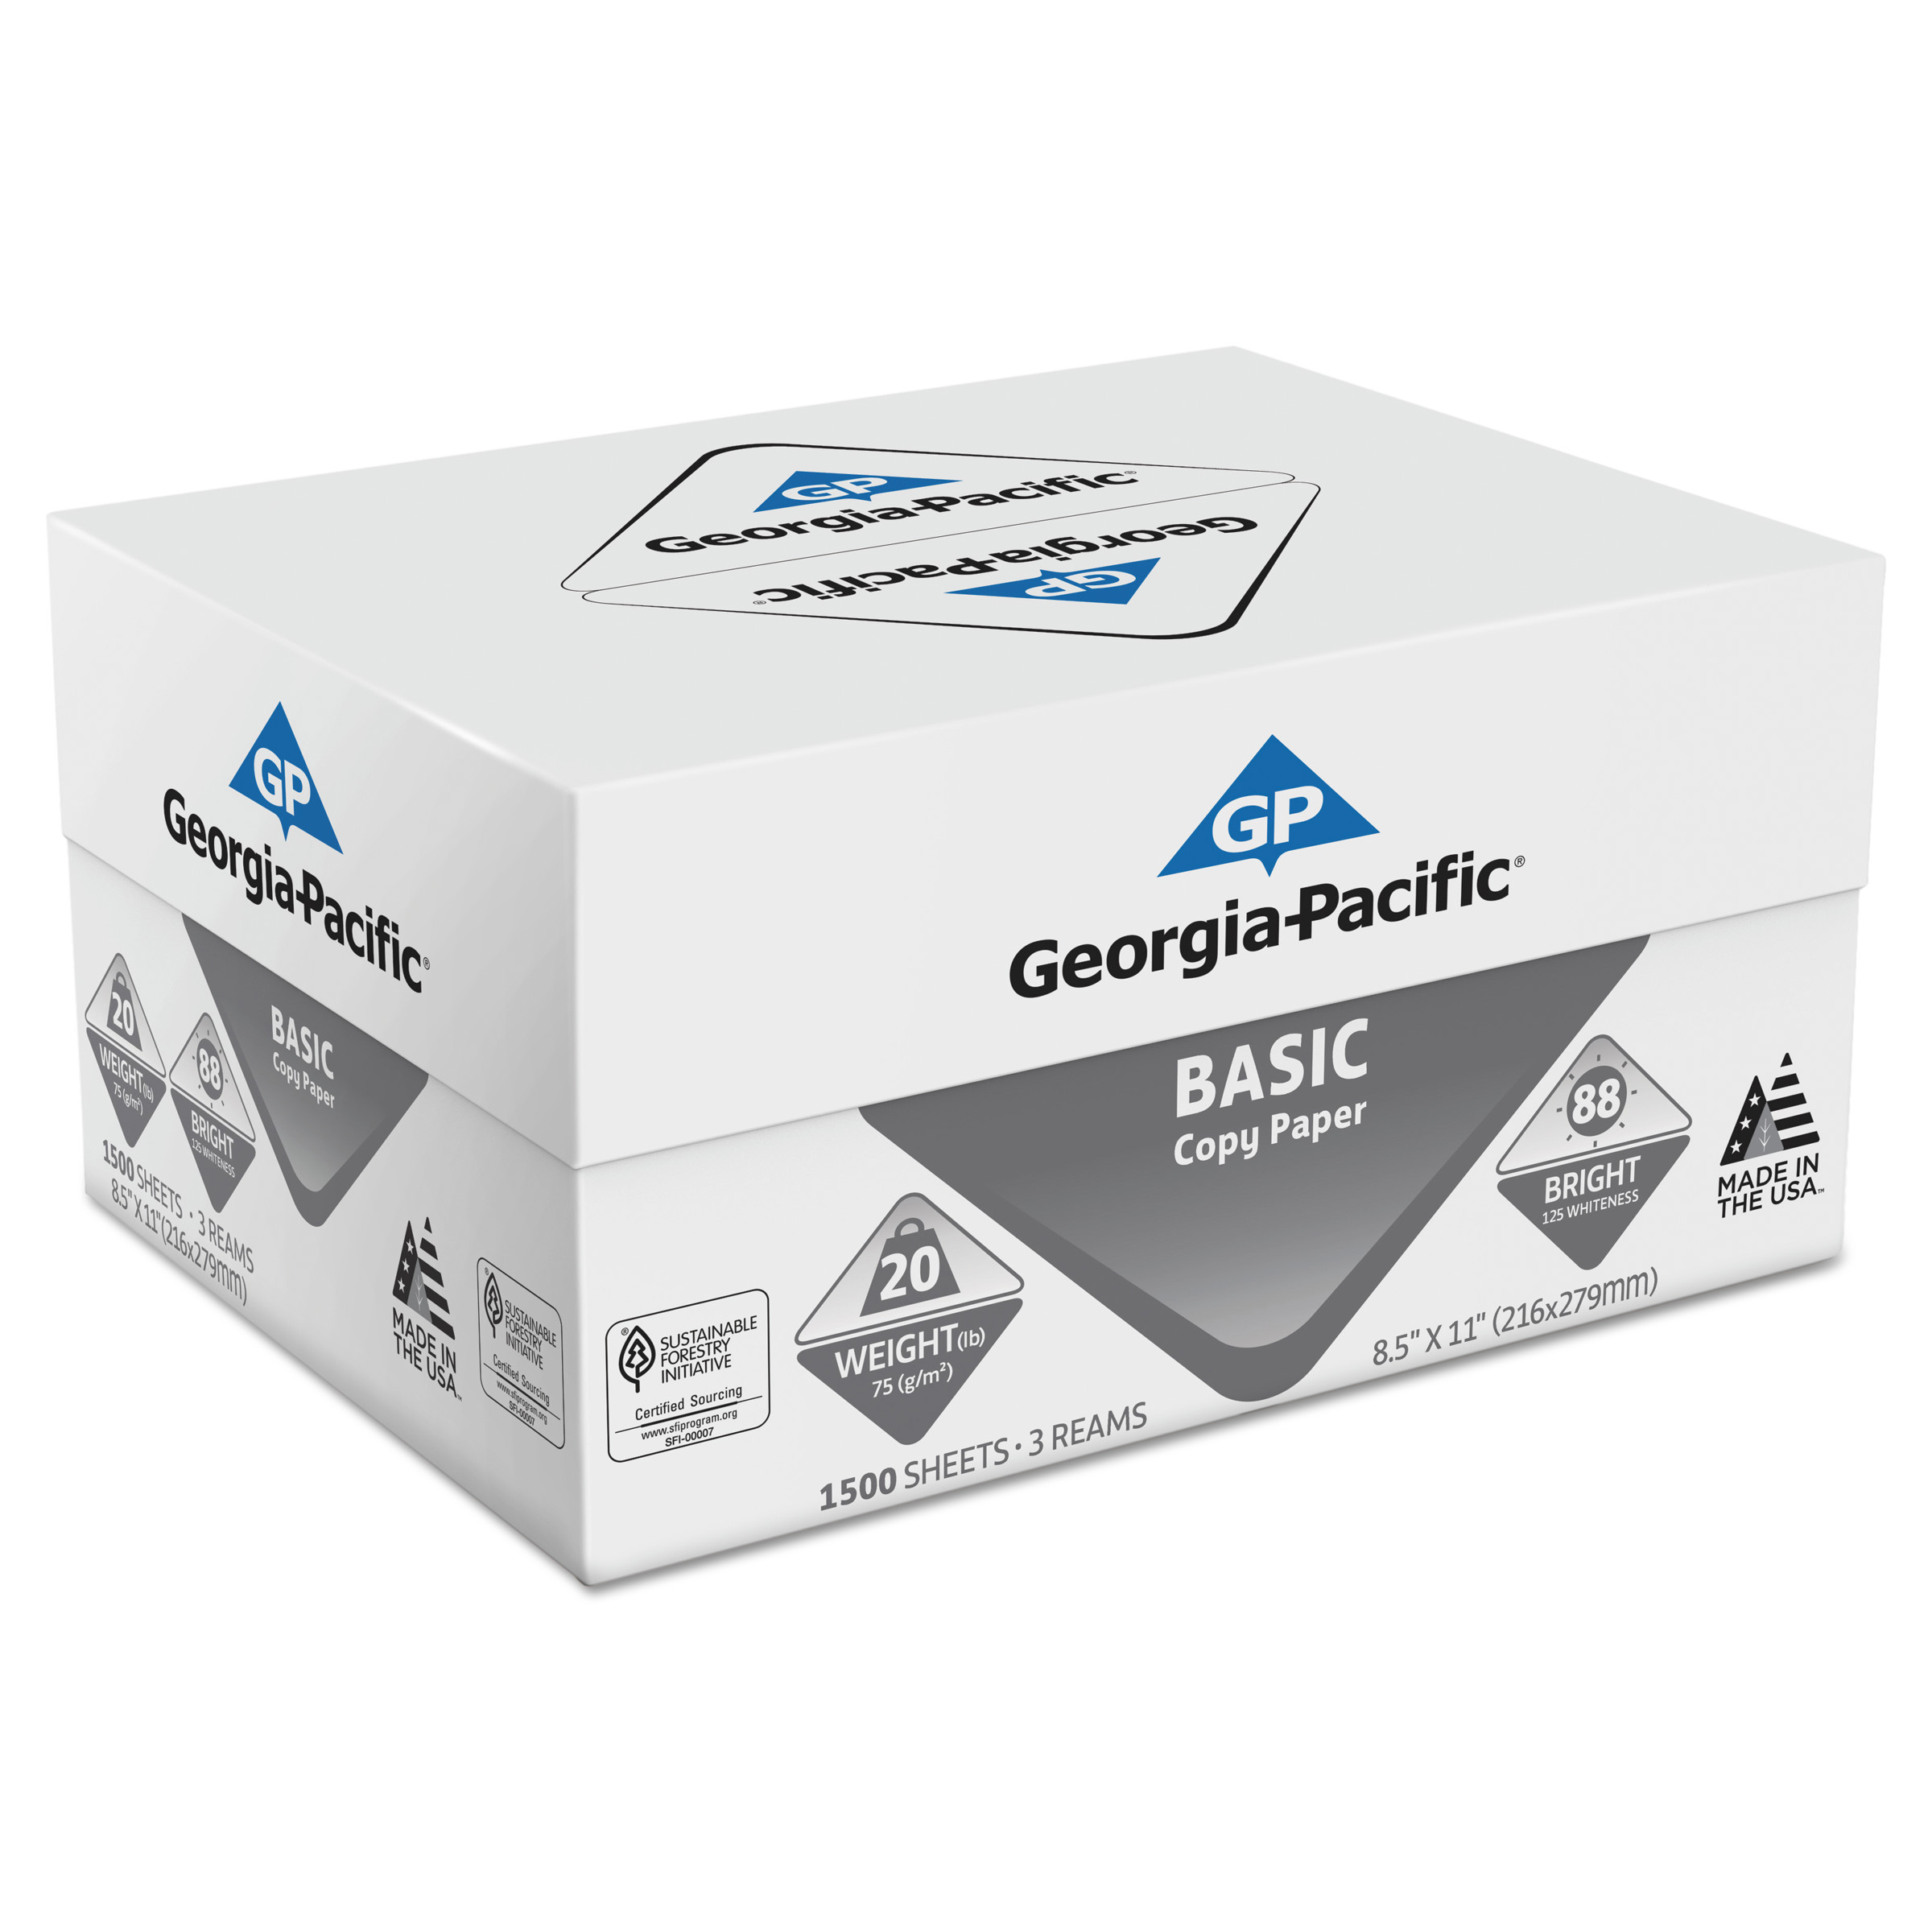 Georgia Pacific Basic Copy Paper, 8 1/2 x 11, 88 Bright, White, 1500 Sheets/Carton